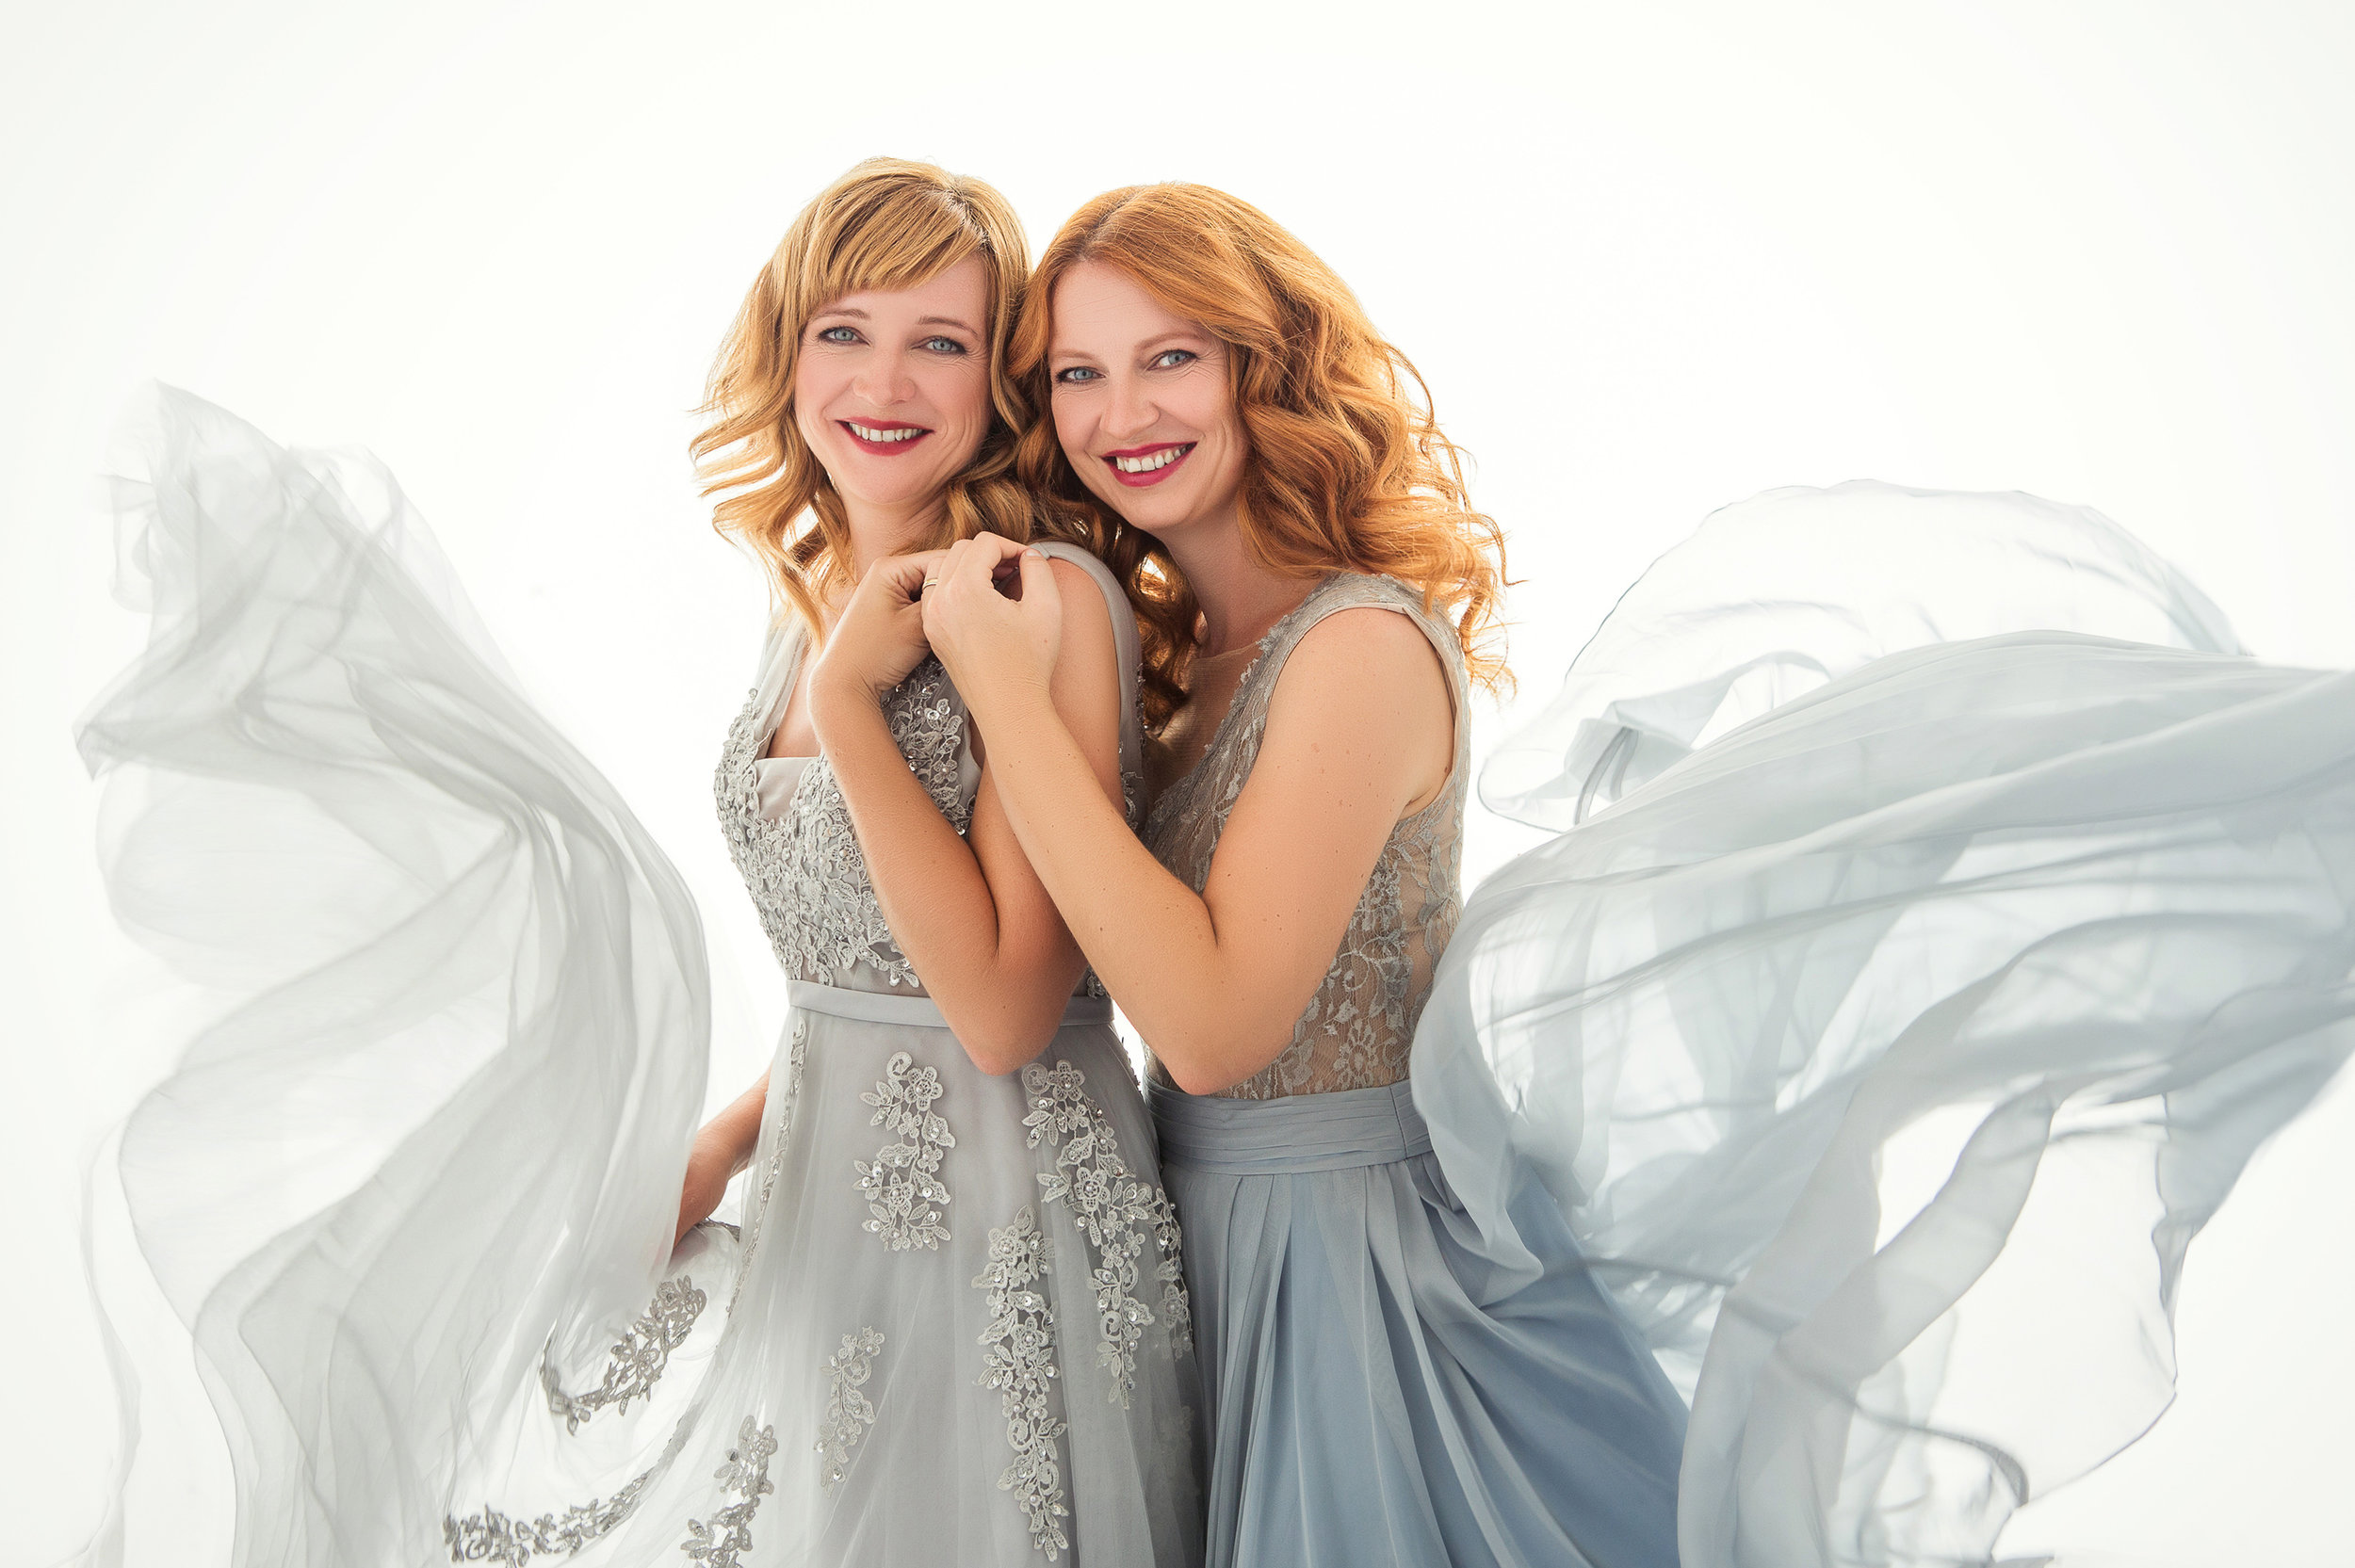 windsor_photographer_london_portrait_studio_suebryceeducation_sisters.jpg